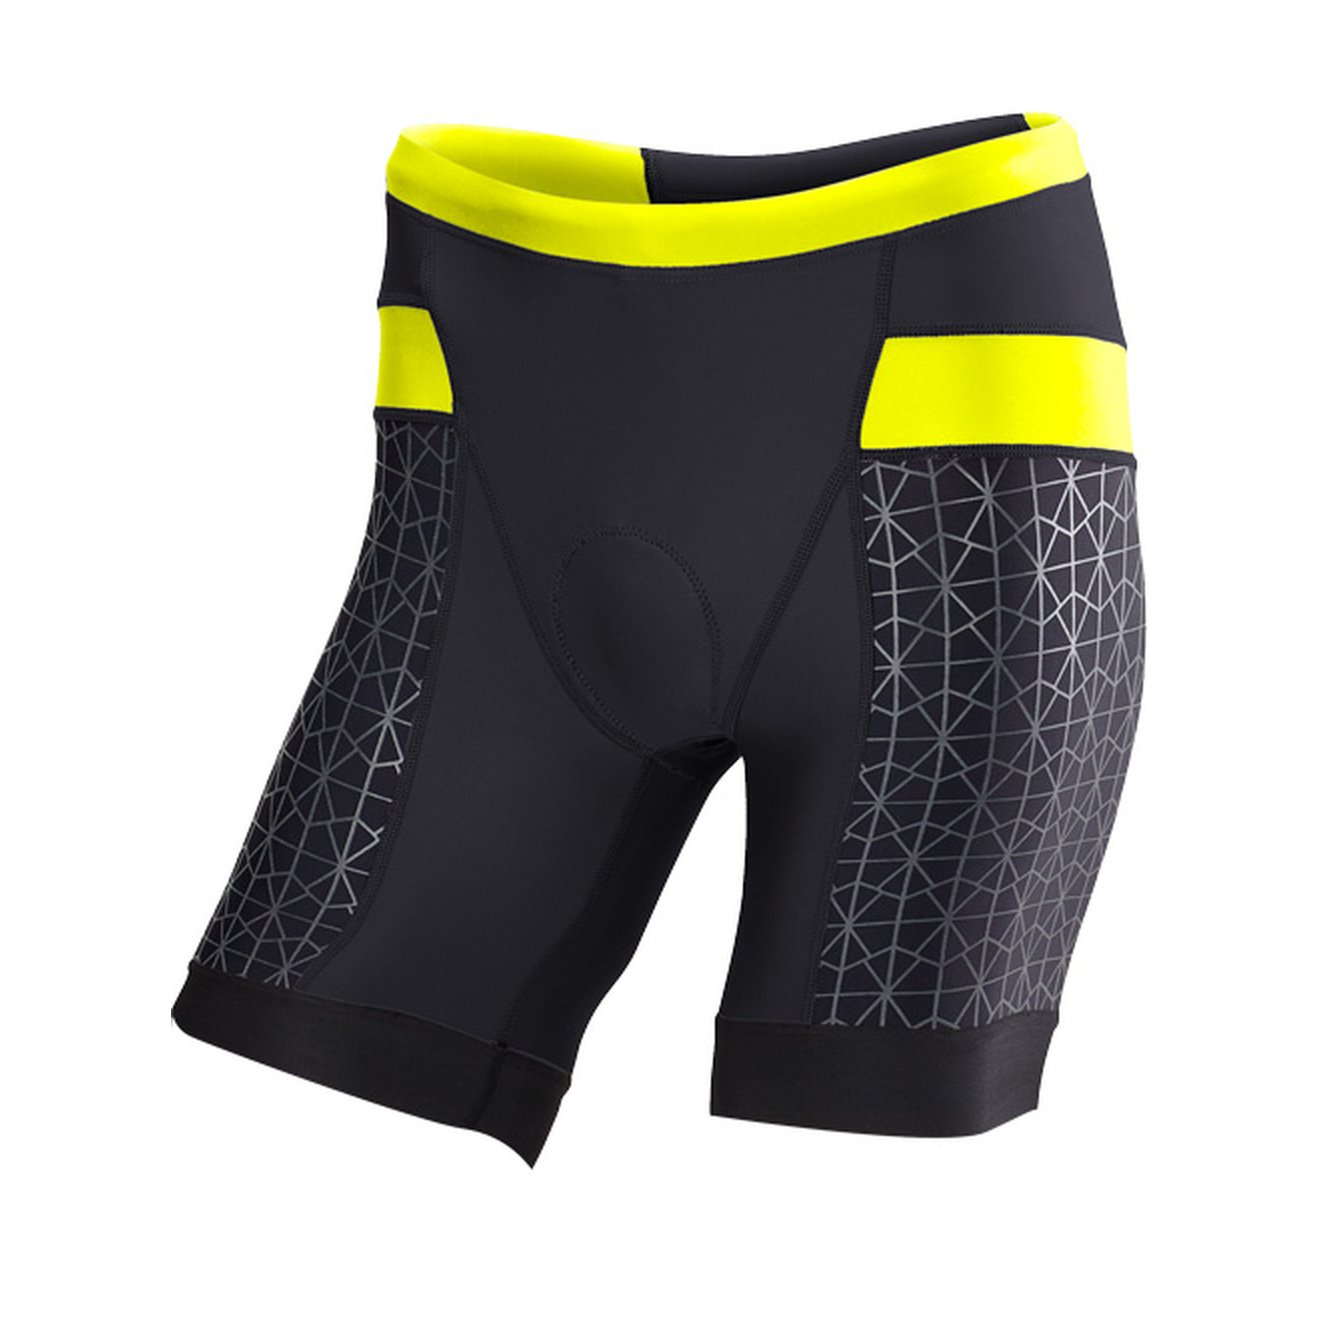 TYR Men's 7 Competitor Tri Short